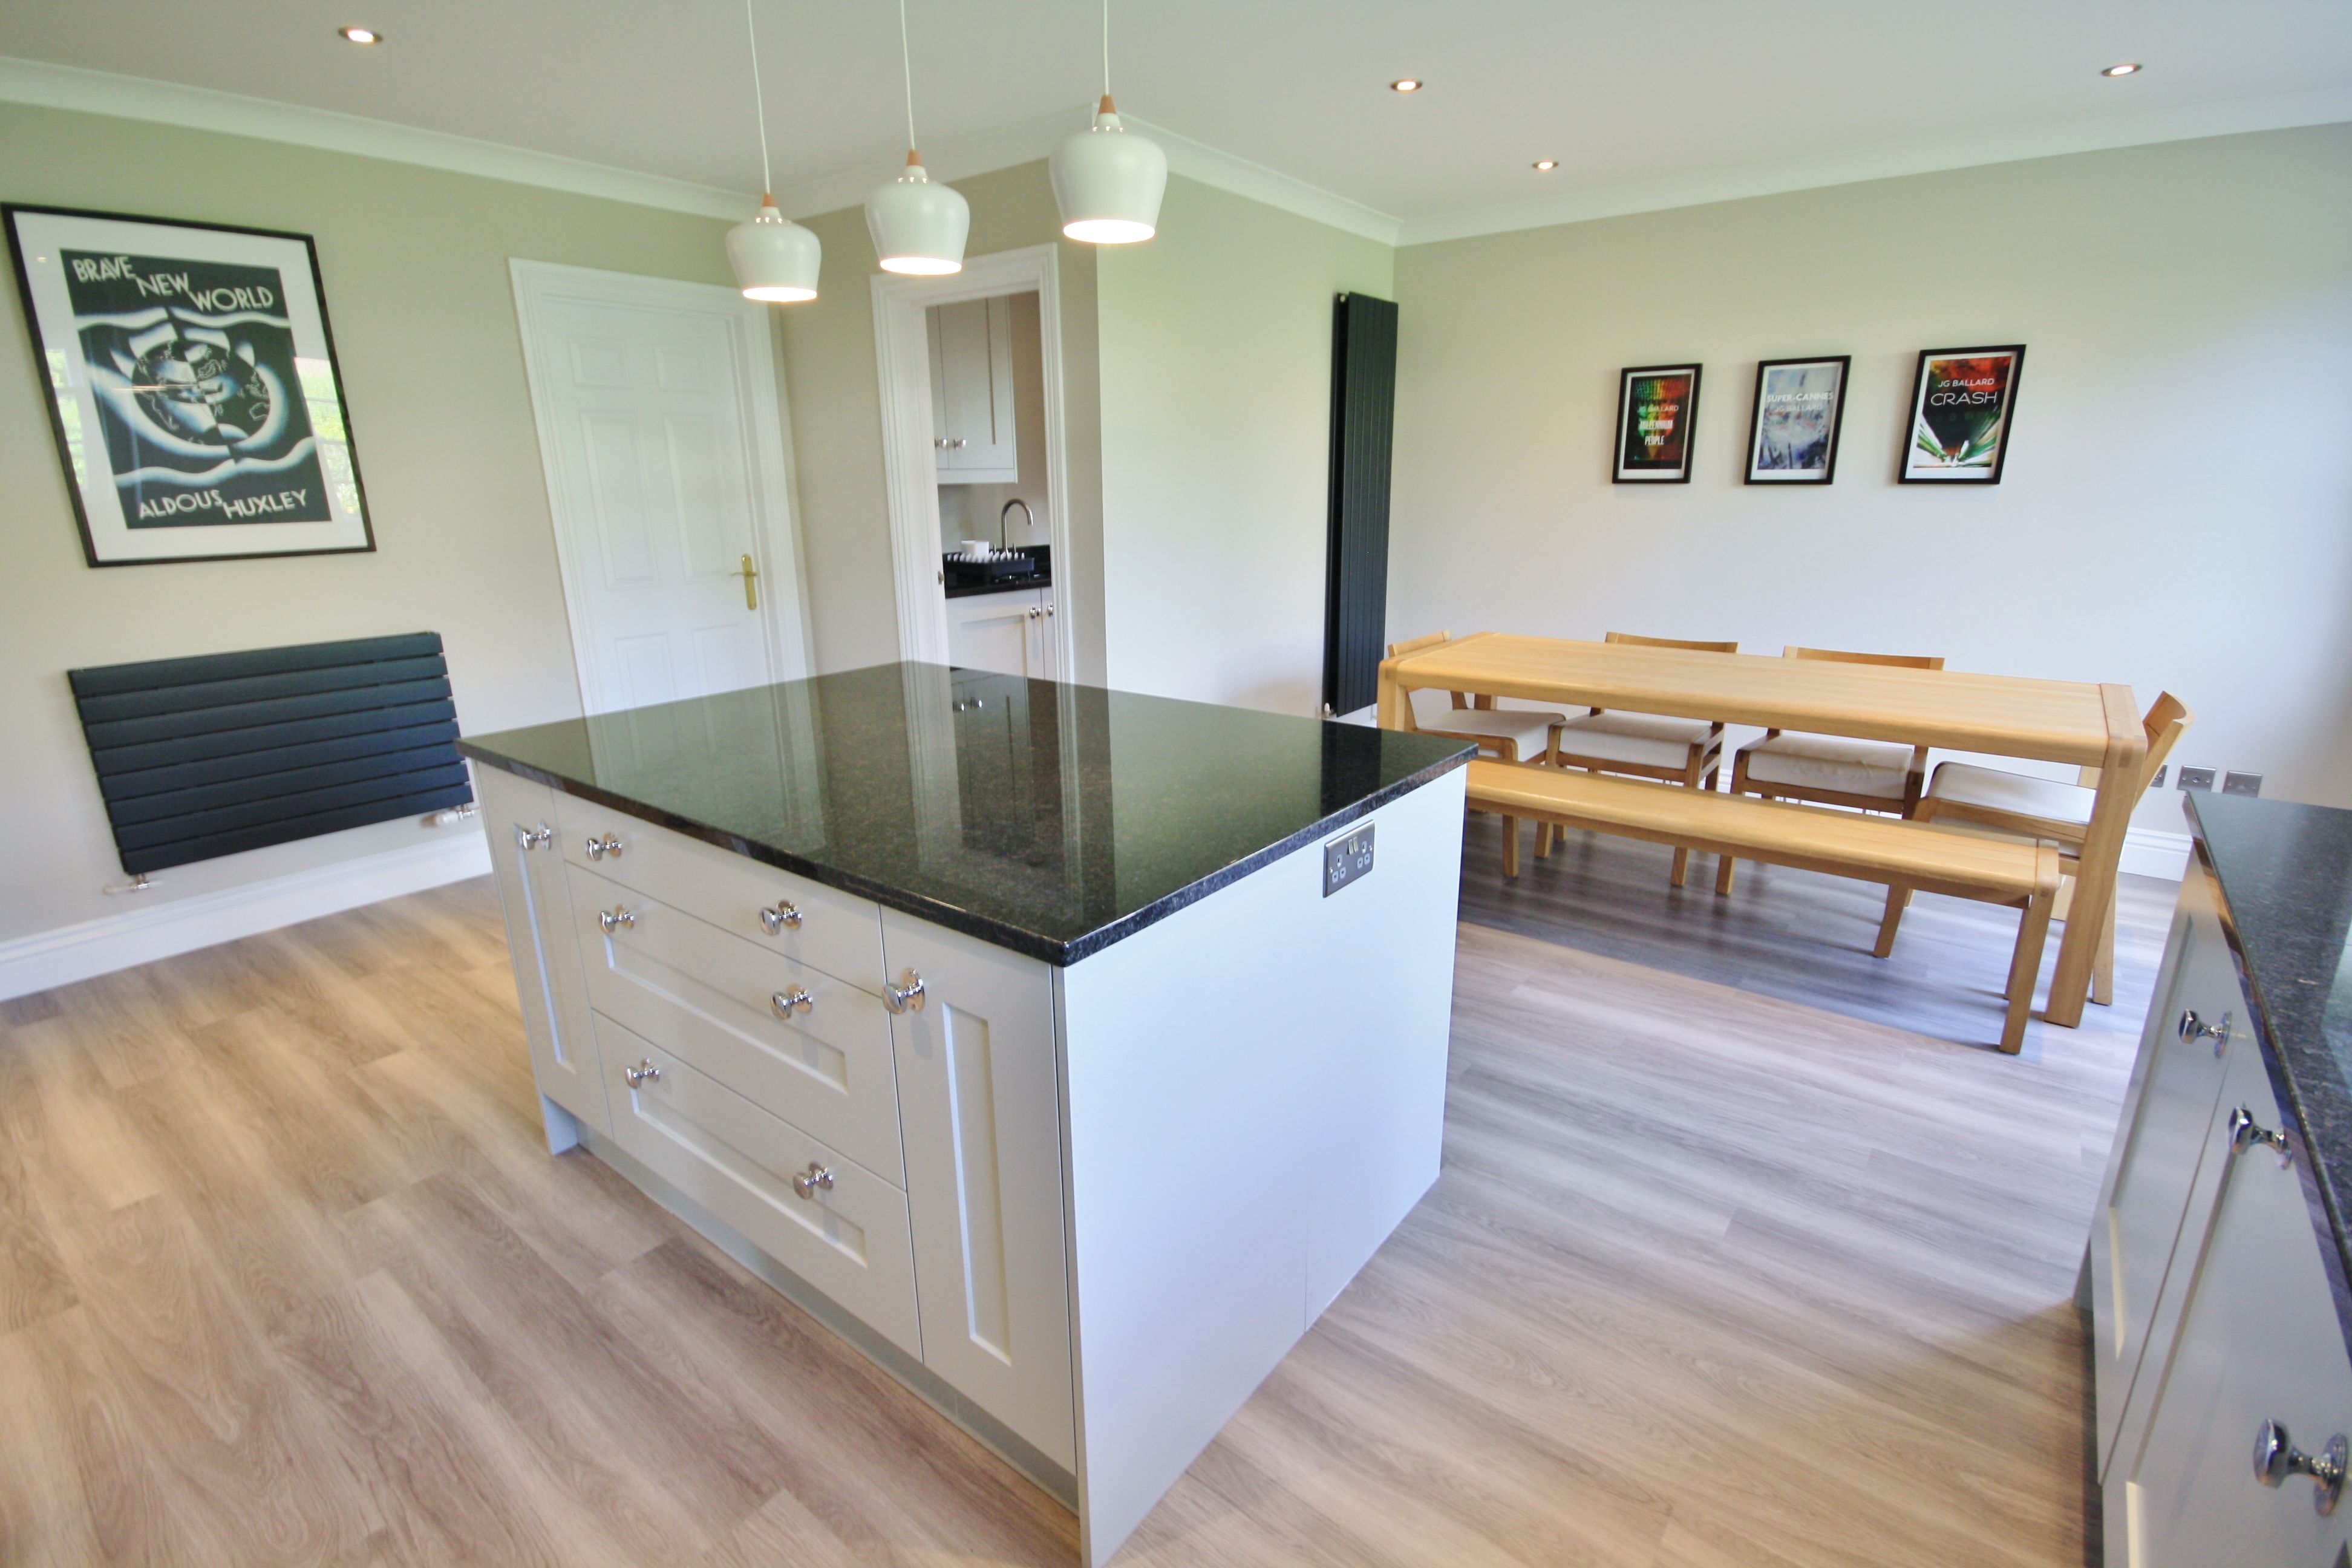 shaker kitchen island Shaker style kitchen island in Grey with matching Utility room Designed Supplied and Installed